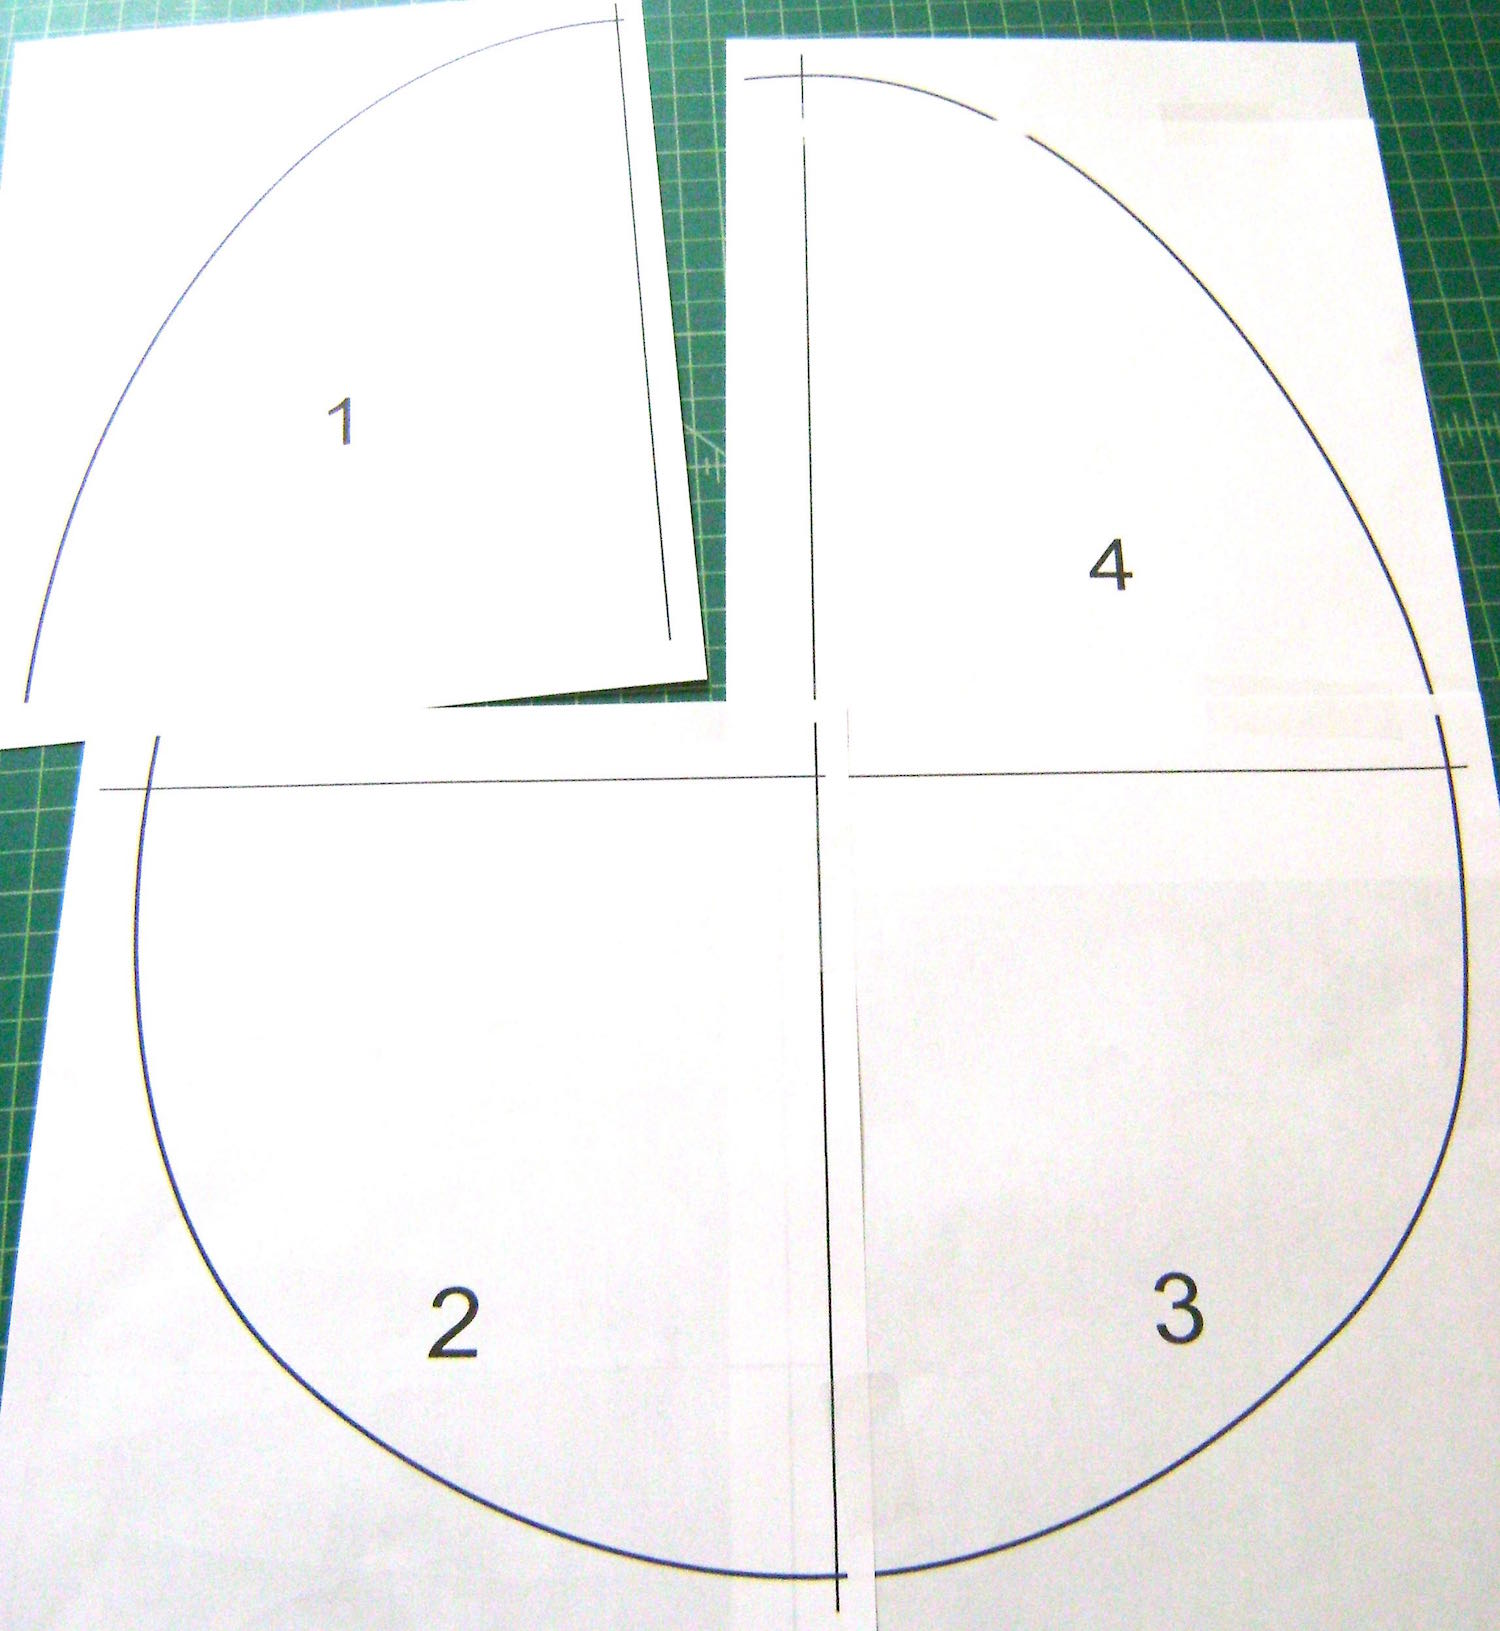 """step 1 - Draw a 20"""" long egg shape on foam board. If you don't trust your drawing ability, find an egg image online and enlarge it to 20"""" in a drawing program or Photoshop. Print it out in four pieces and tape them together. Use the printout to cut the foam board with a craft knife."""